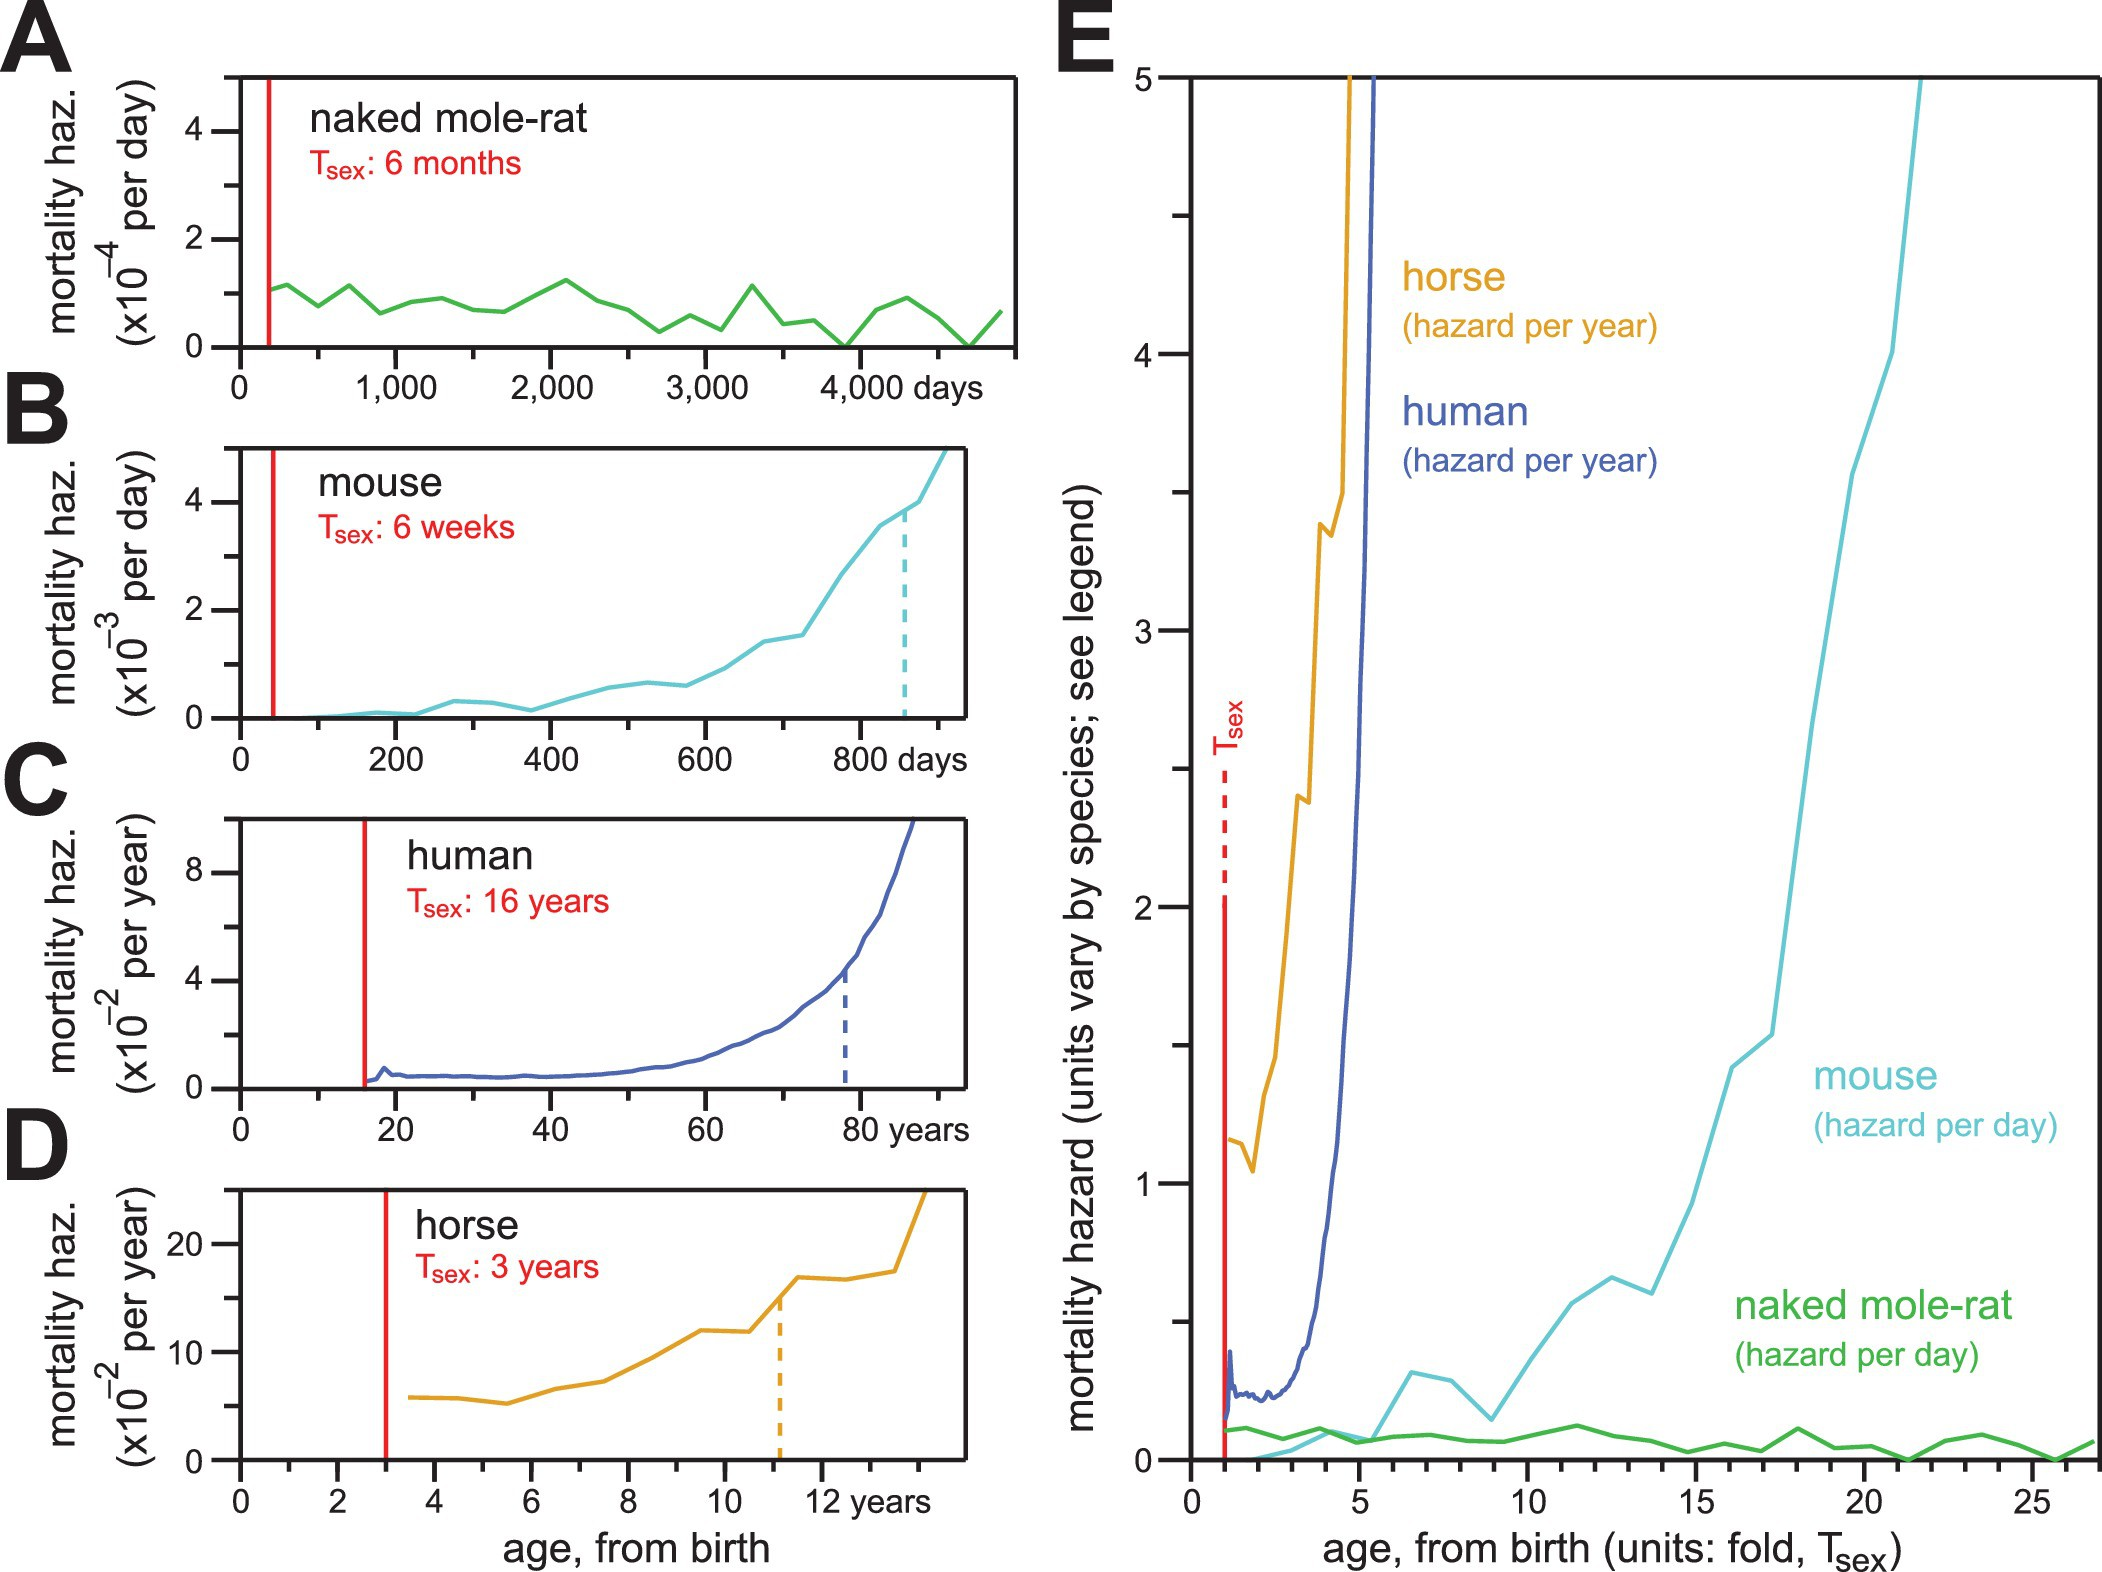 (PDF) Response to comment on Naked mole-rat mortality